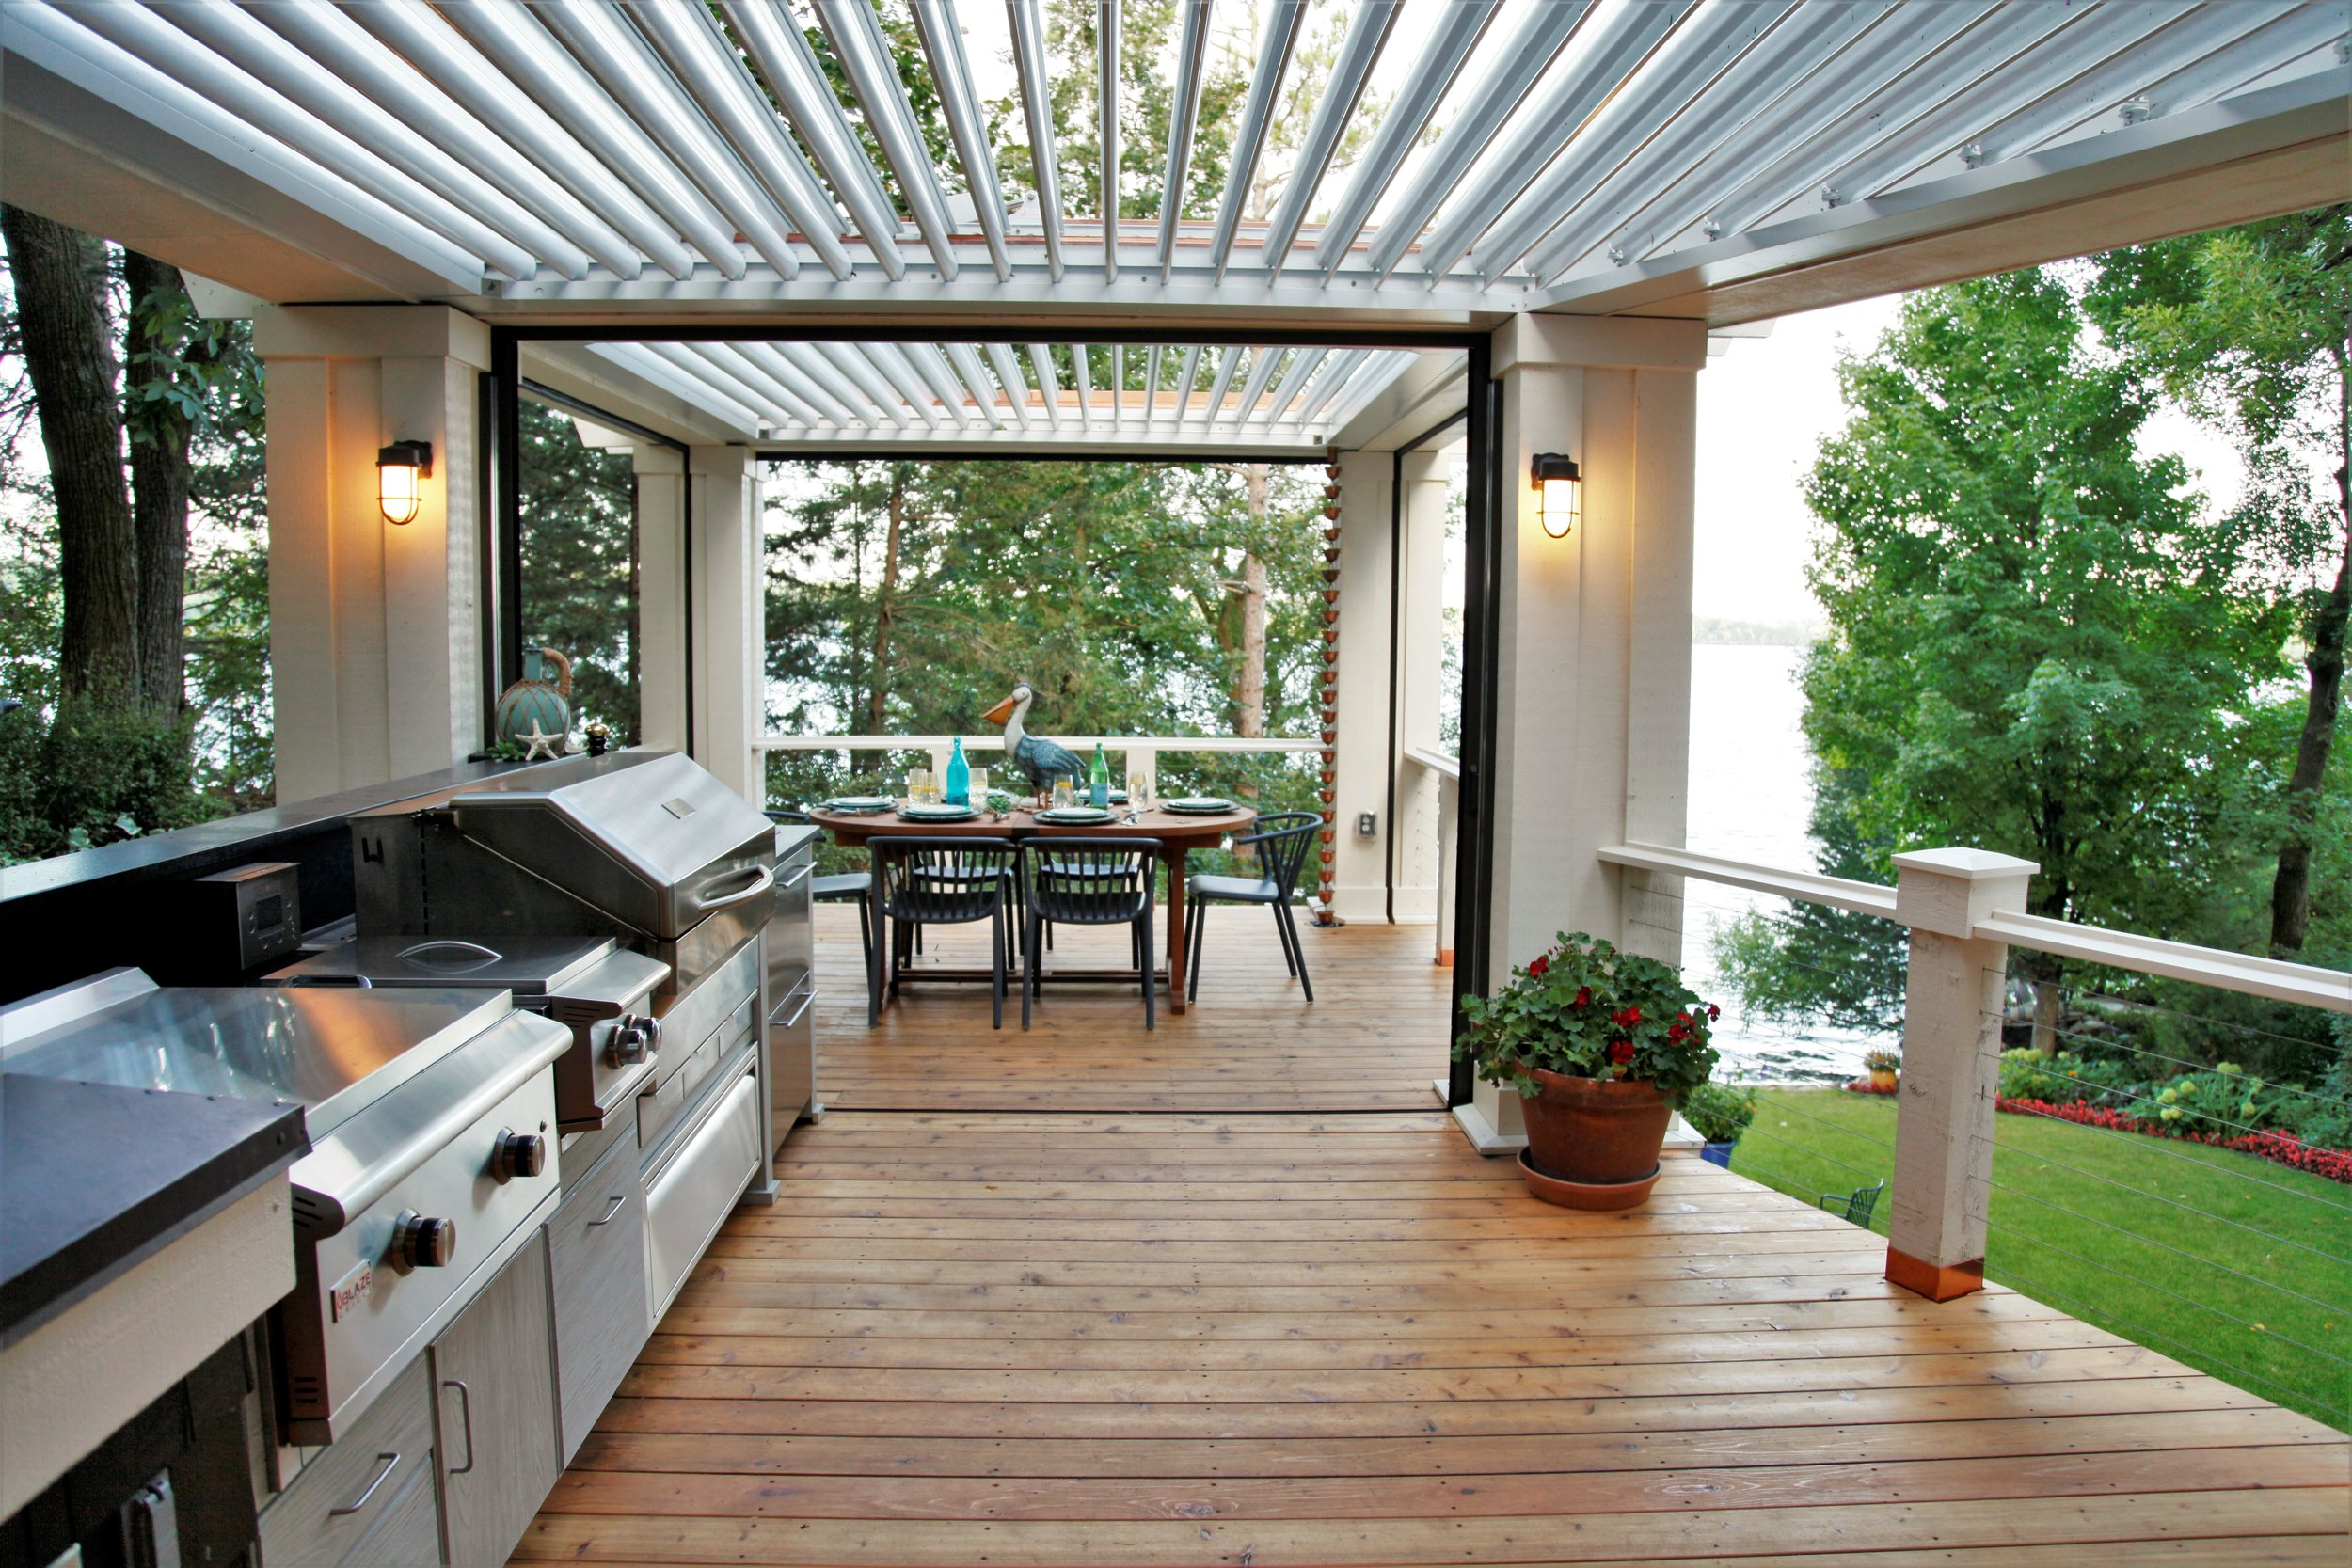 Mom's Design Build - Outdoor Kitchen Grill